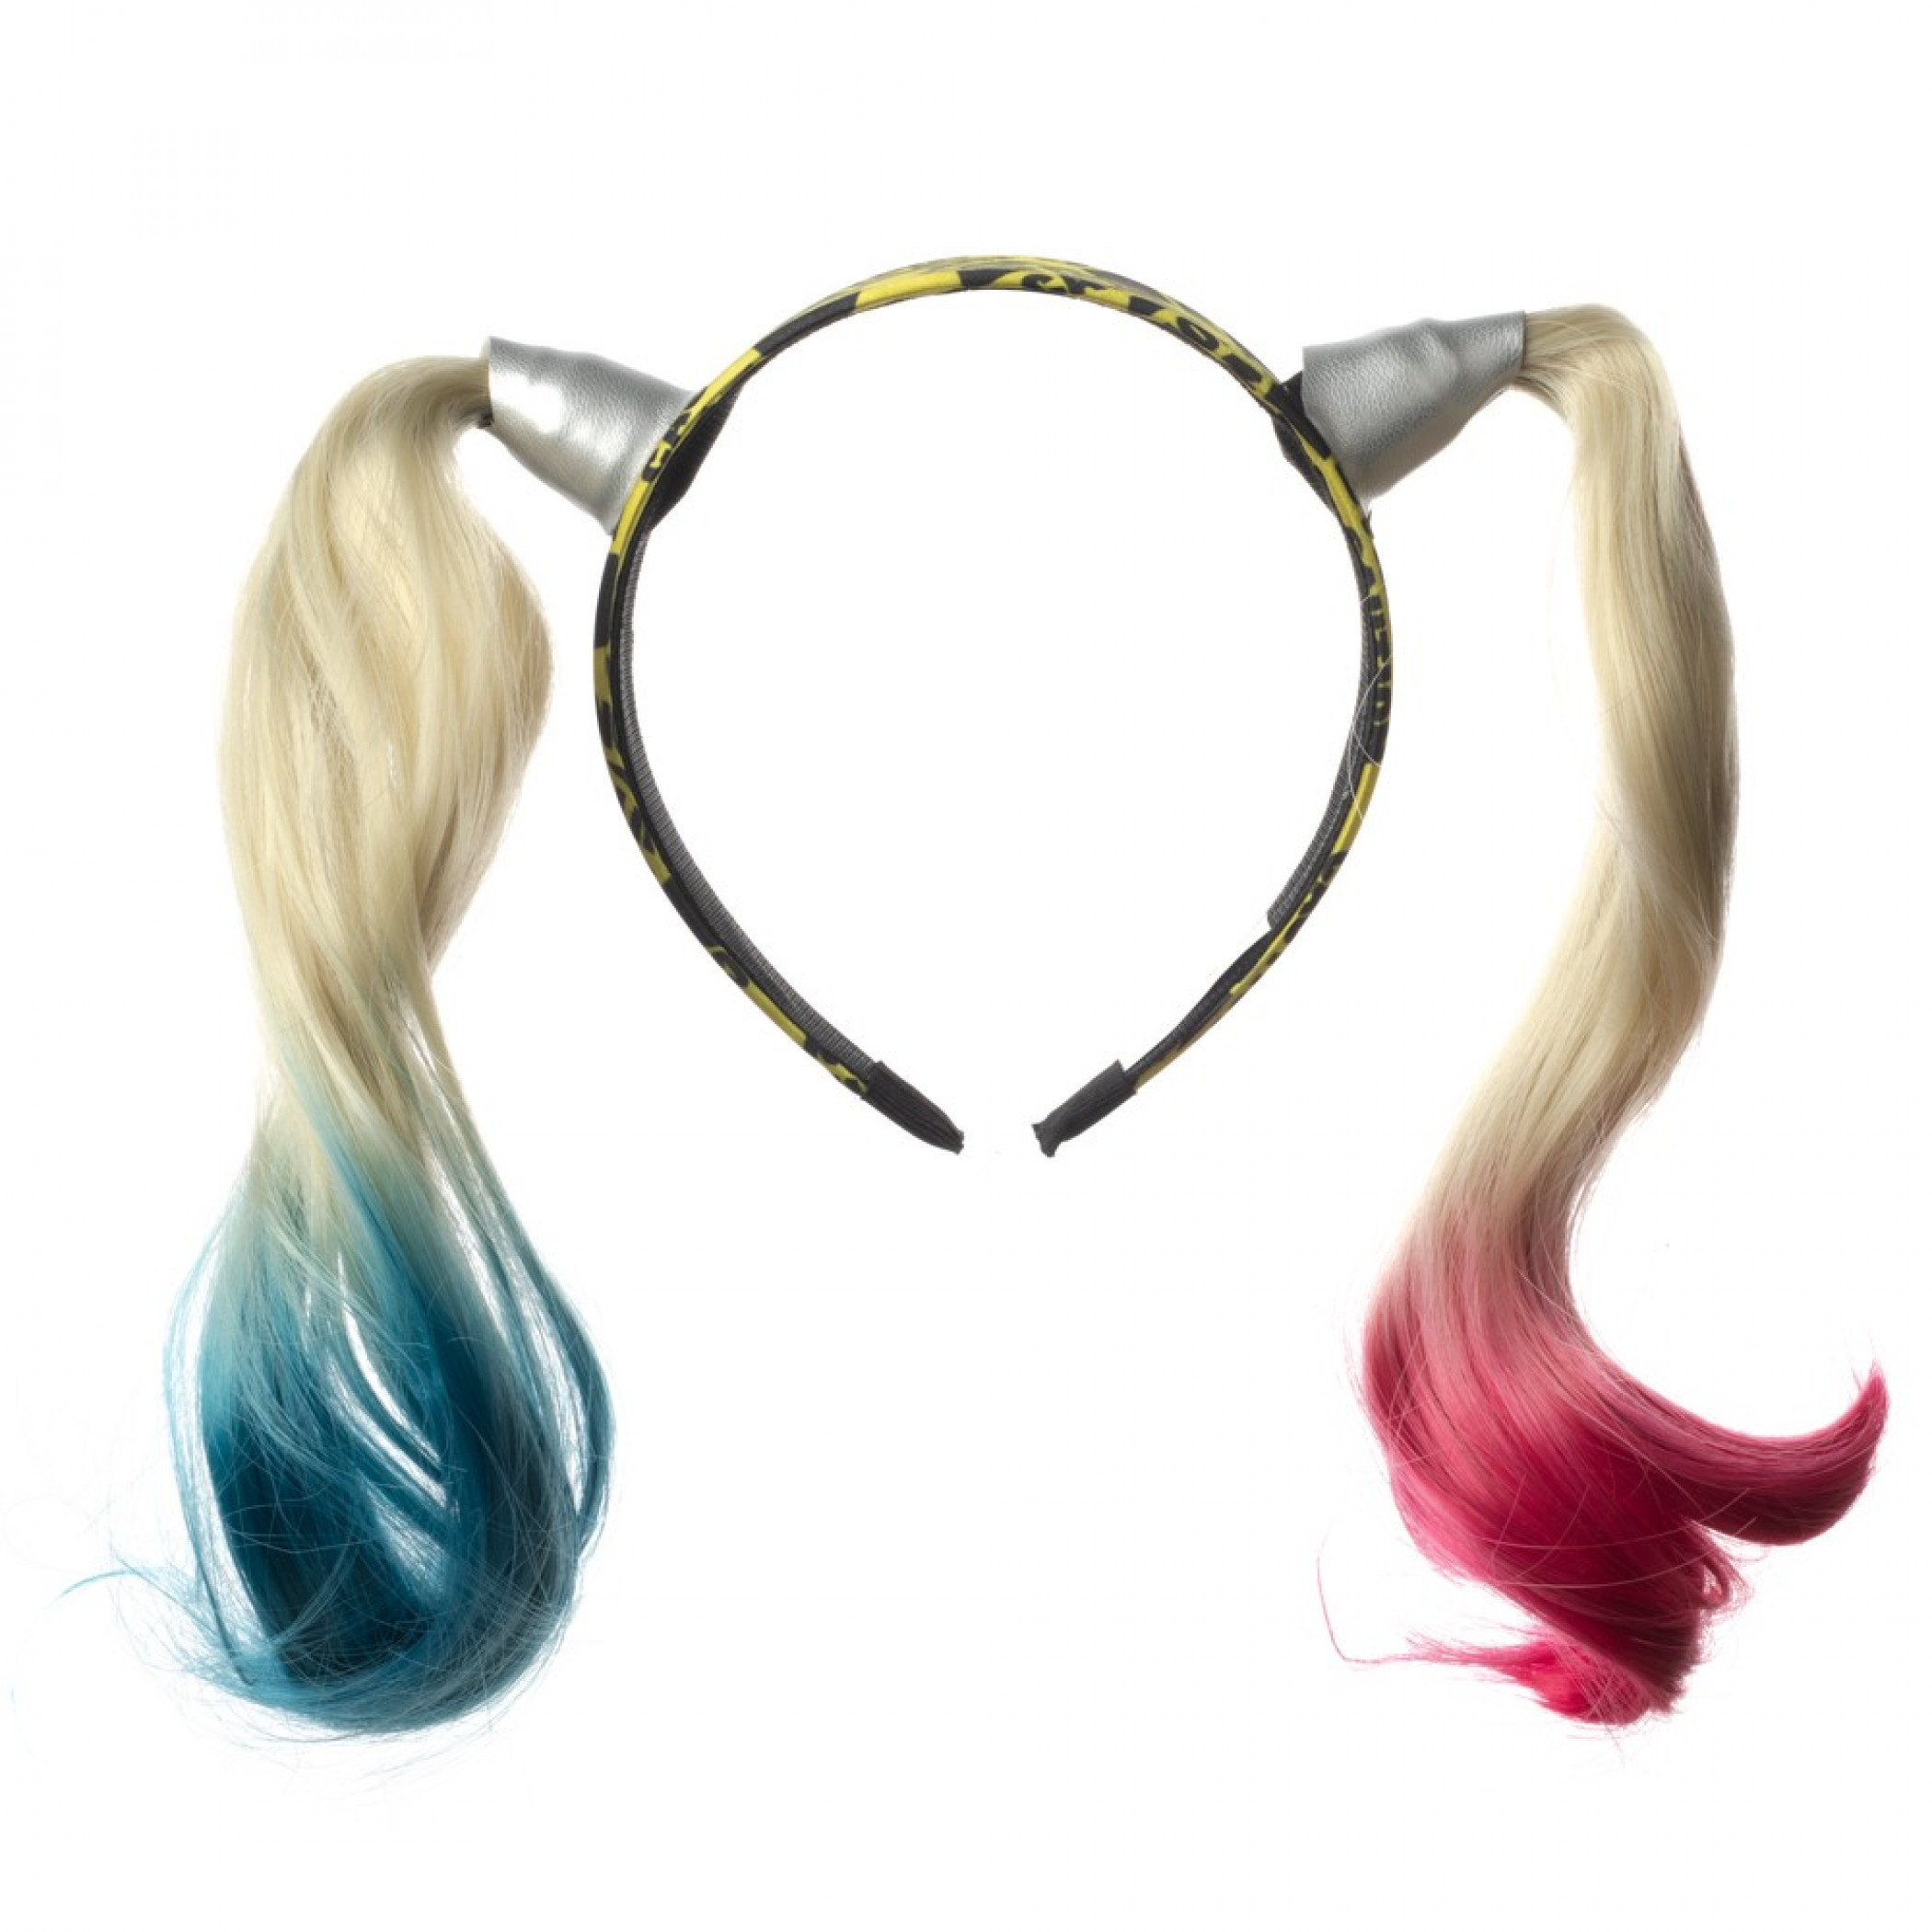 Birds of Prey Harley Quinn Cosplay Headband